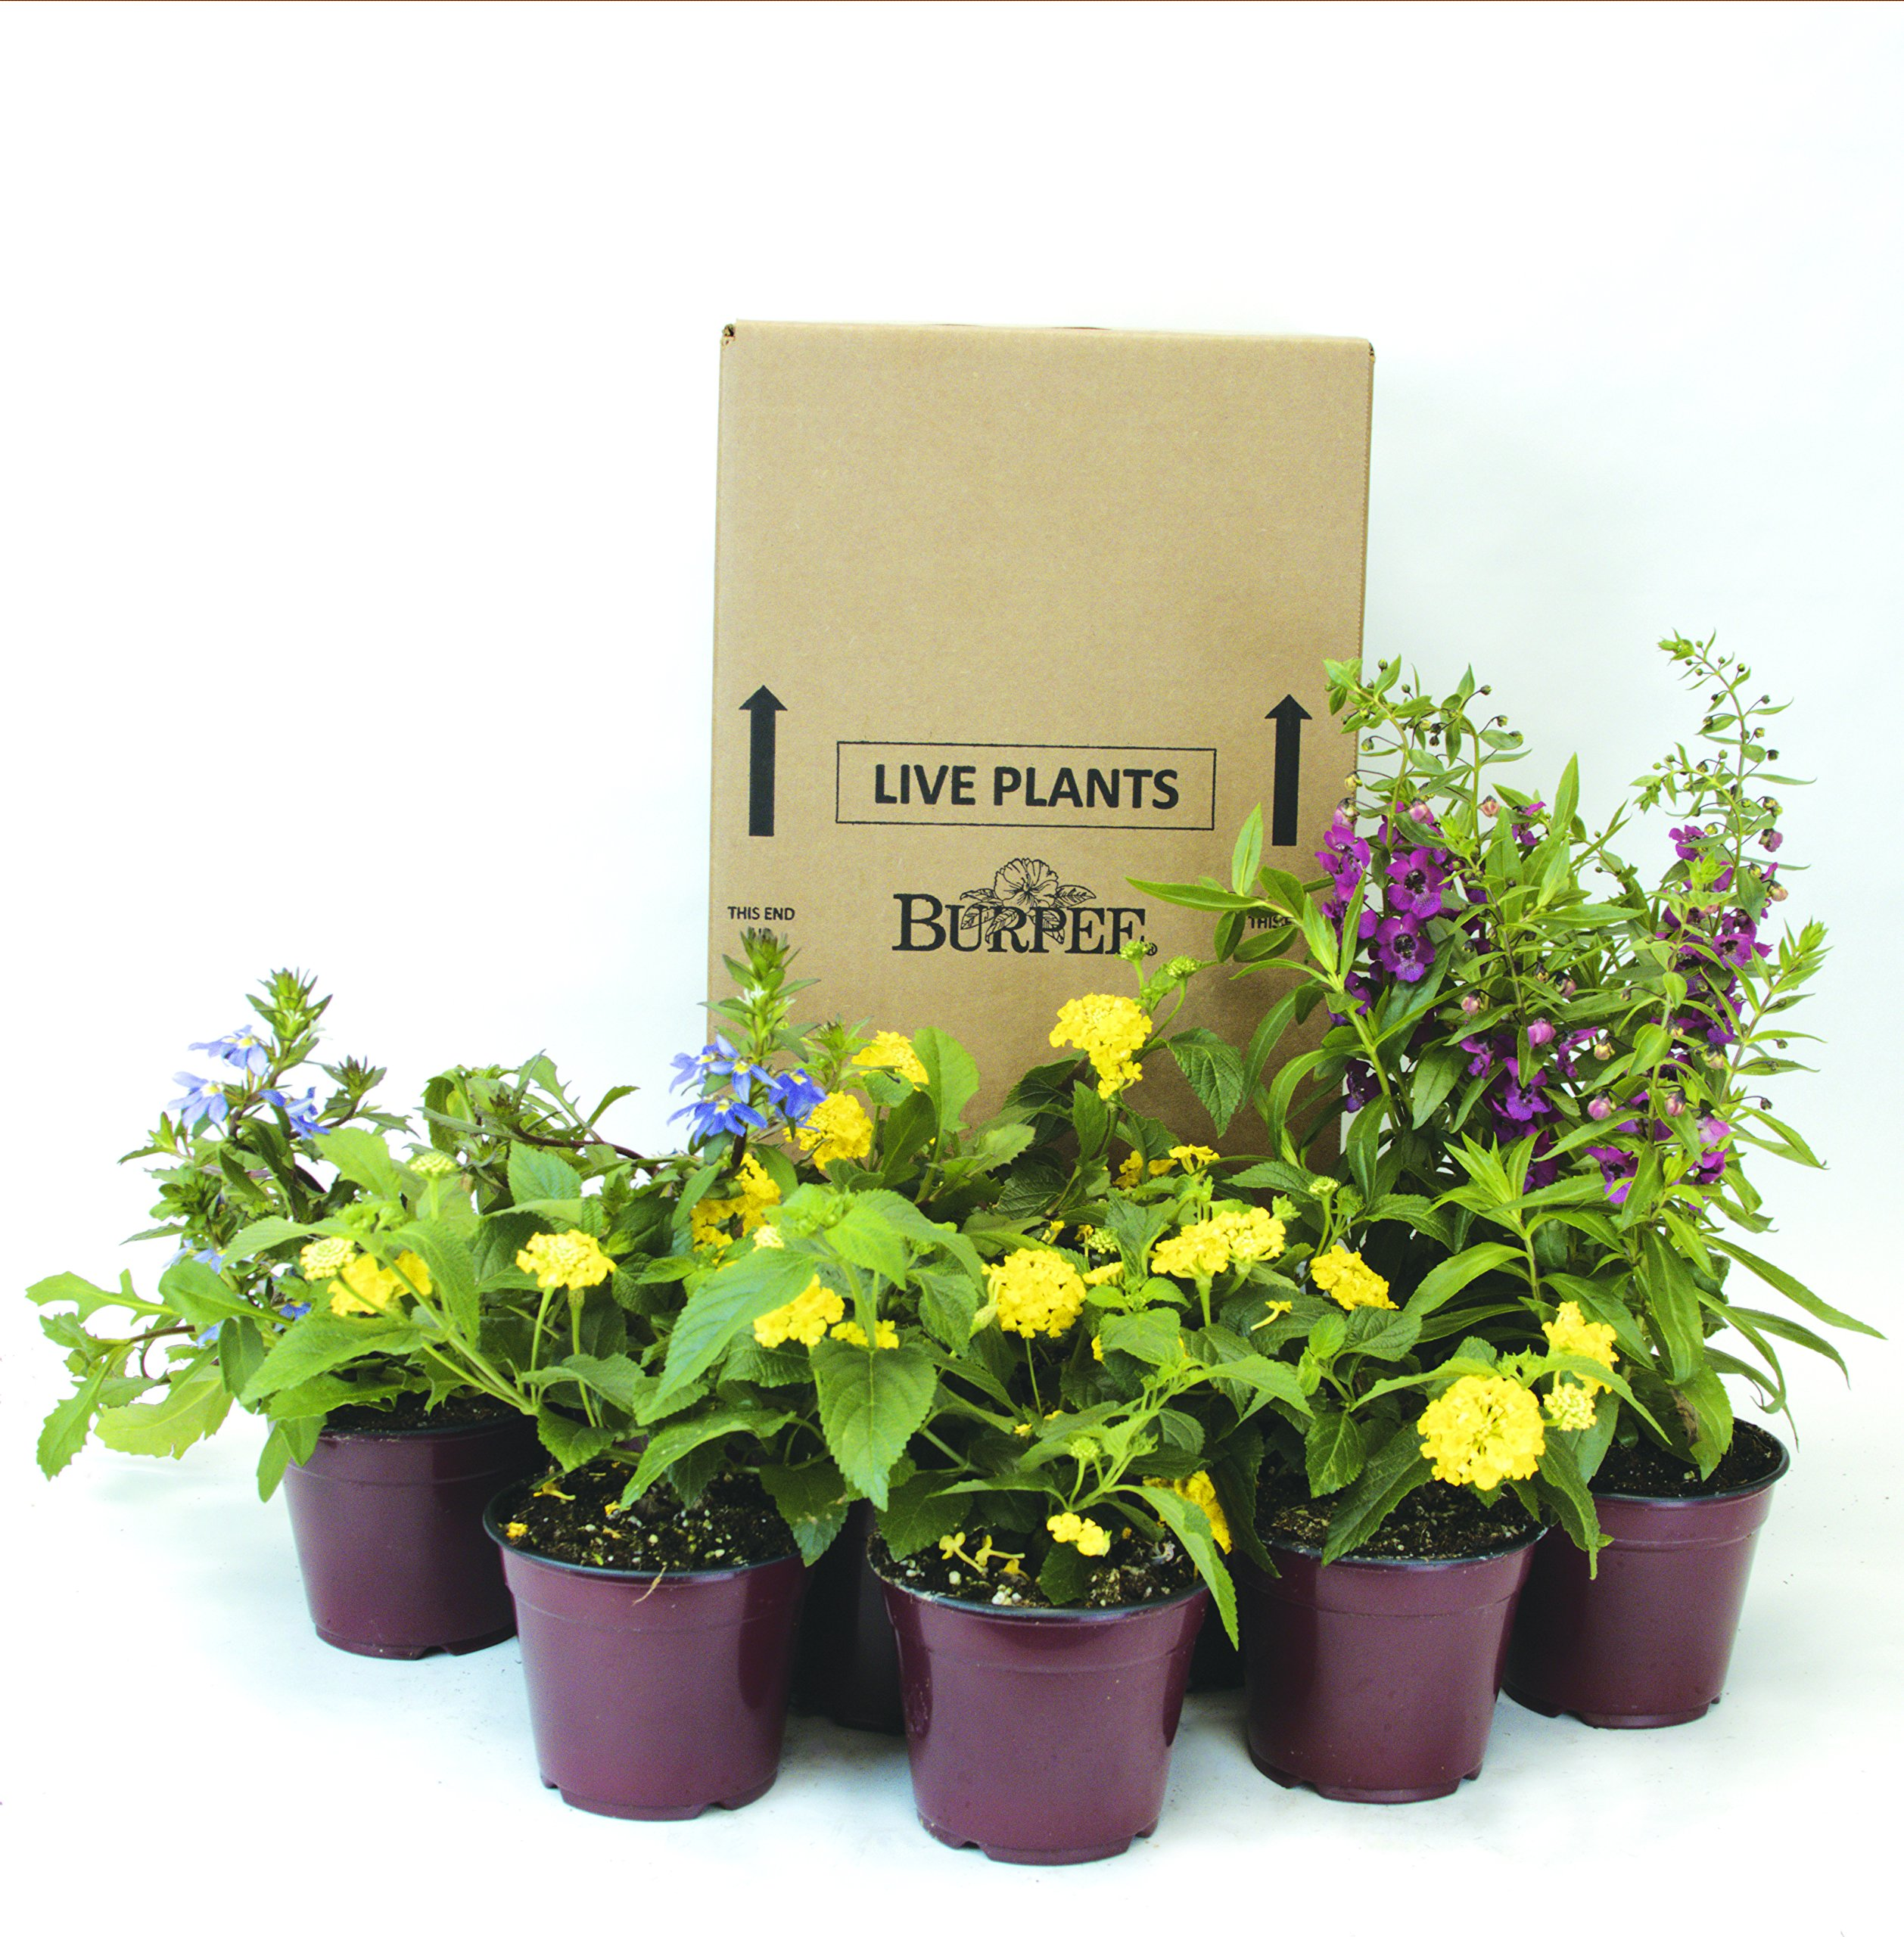 Burpee Combo 'Daydream' - Create Instant Colorful Container Gardens with Twelve 4 in. pots